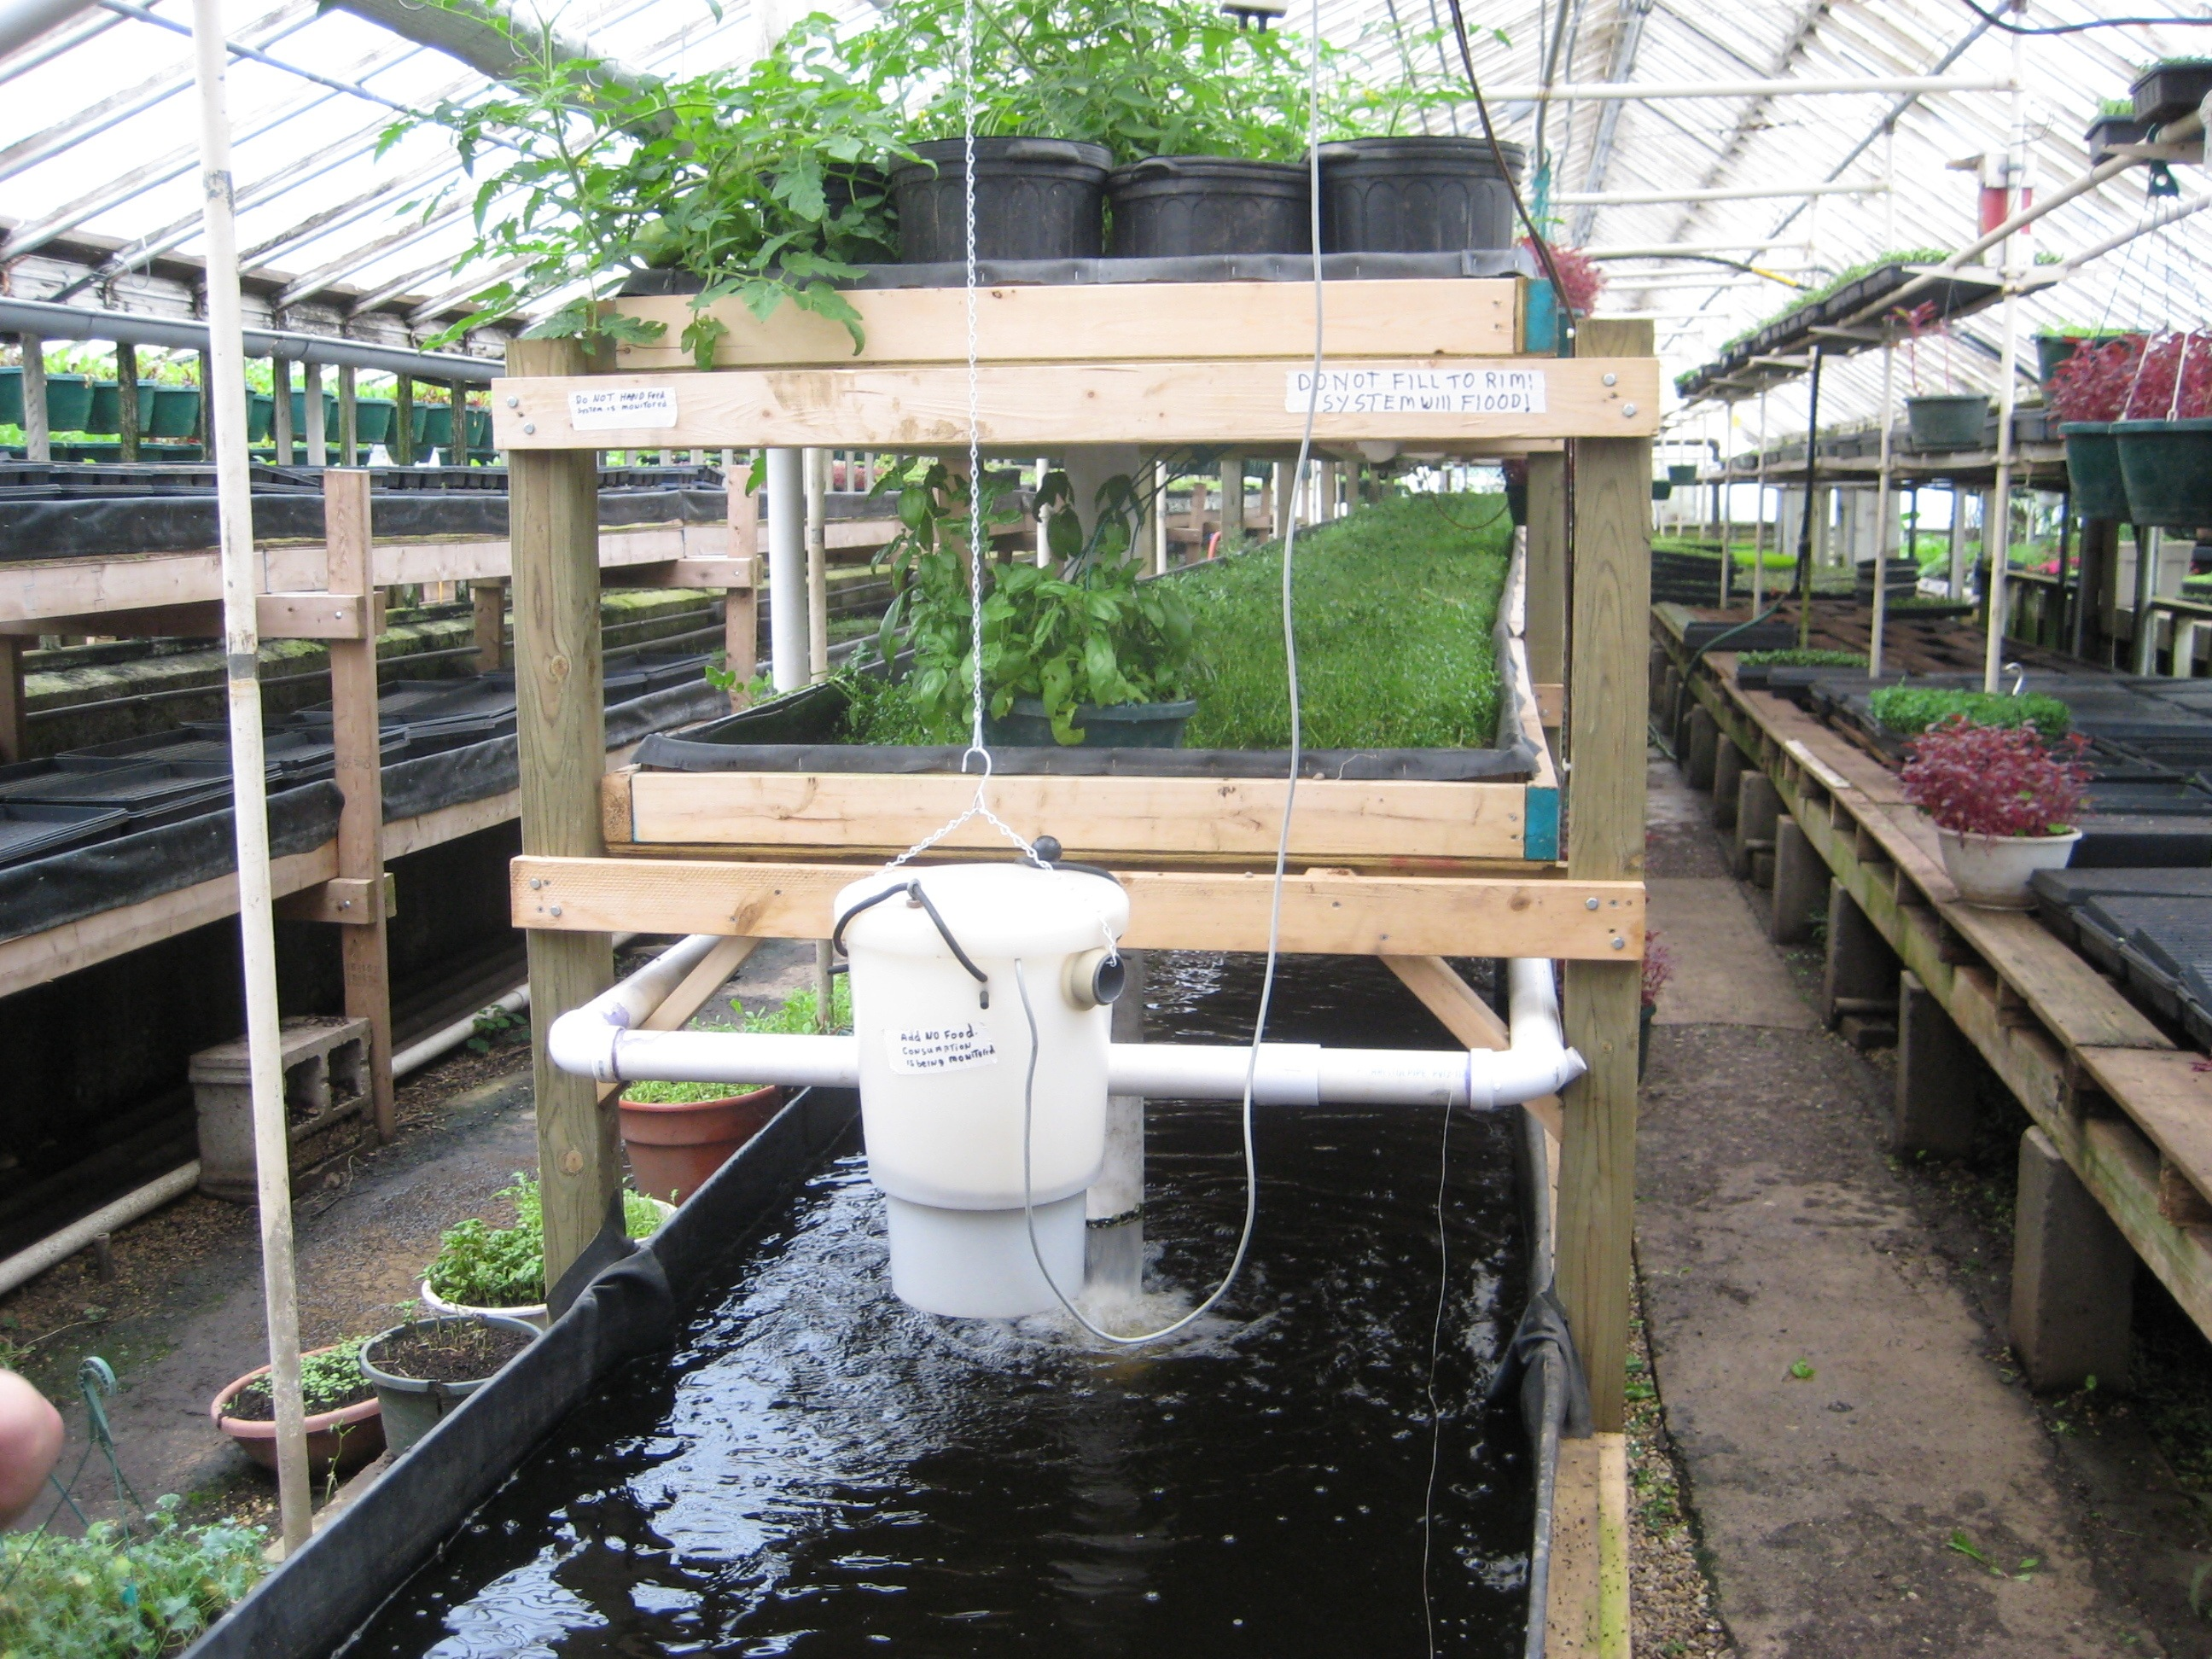 An aquaponic system that involves tilapia or perch up to 10,000 fish in the 5 ft deep tank with watercress and tomatoes as an example of Deep Water Culture